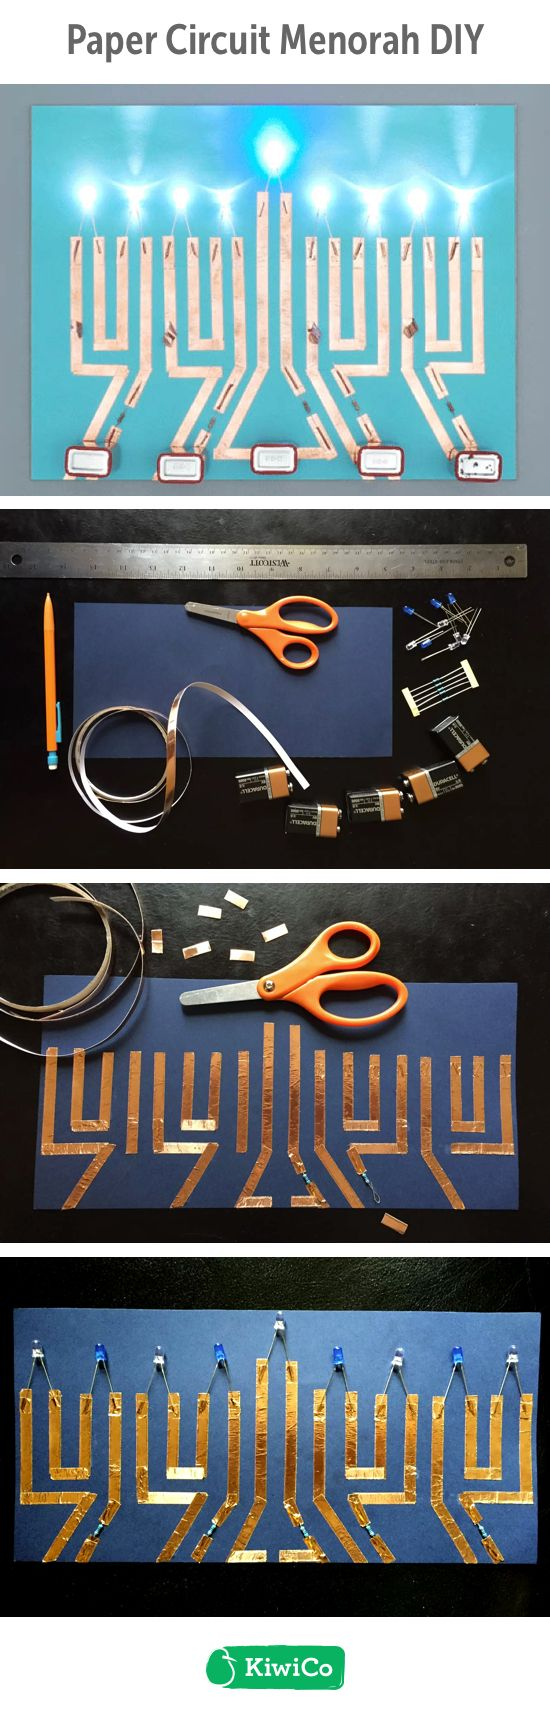 Create a menorah using copper tape and LED lights. This Hanukkah DIY craft is great for all ages. It's an interesting challenge for kids to tackle. Light up your home with this STEM/STEAM paper circuit menorah DIY.